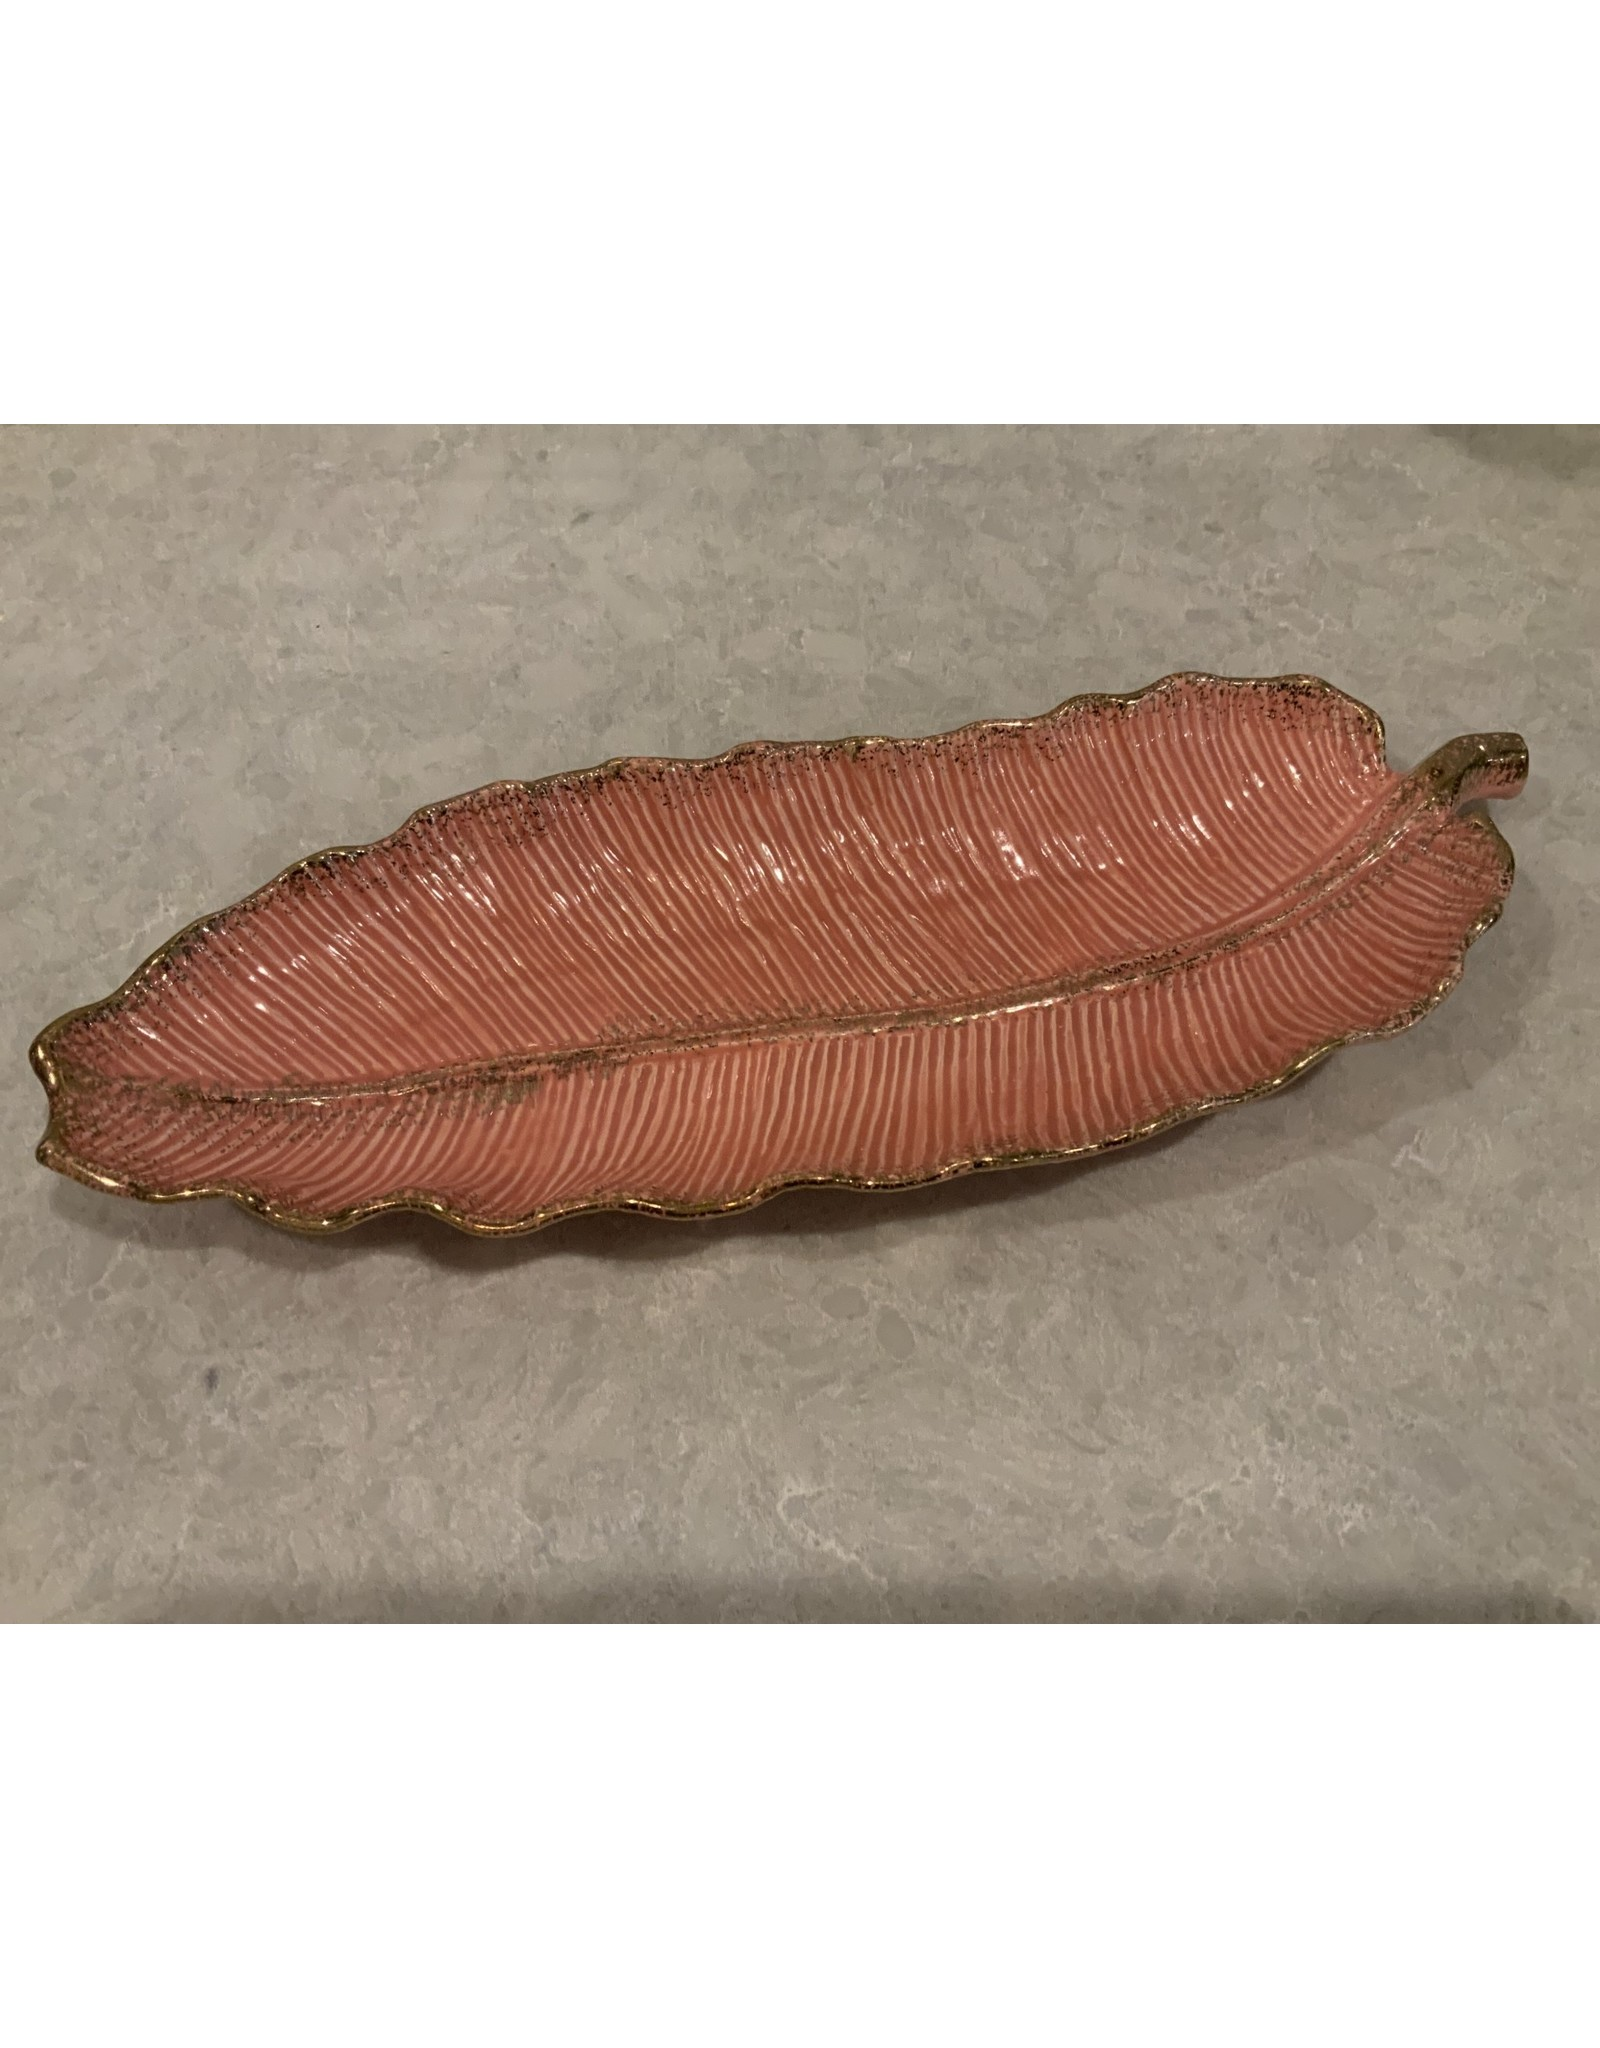 SPV Mid Century Modern California Pottery Coral and Gold Leaf Platter